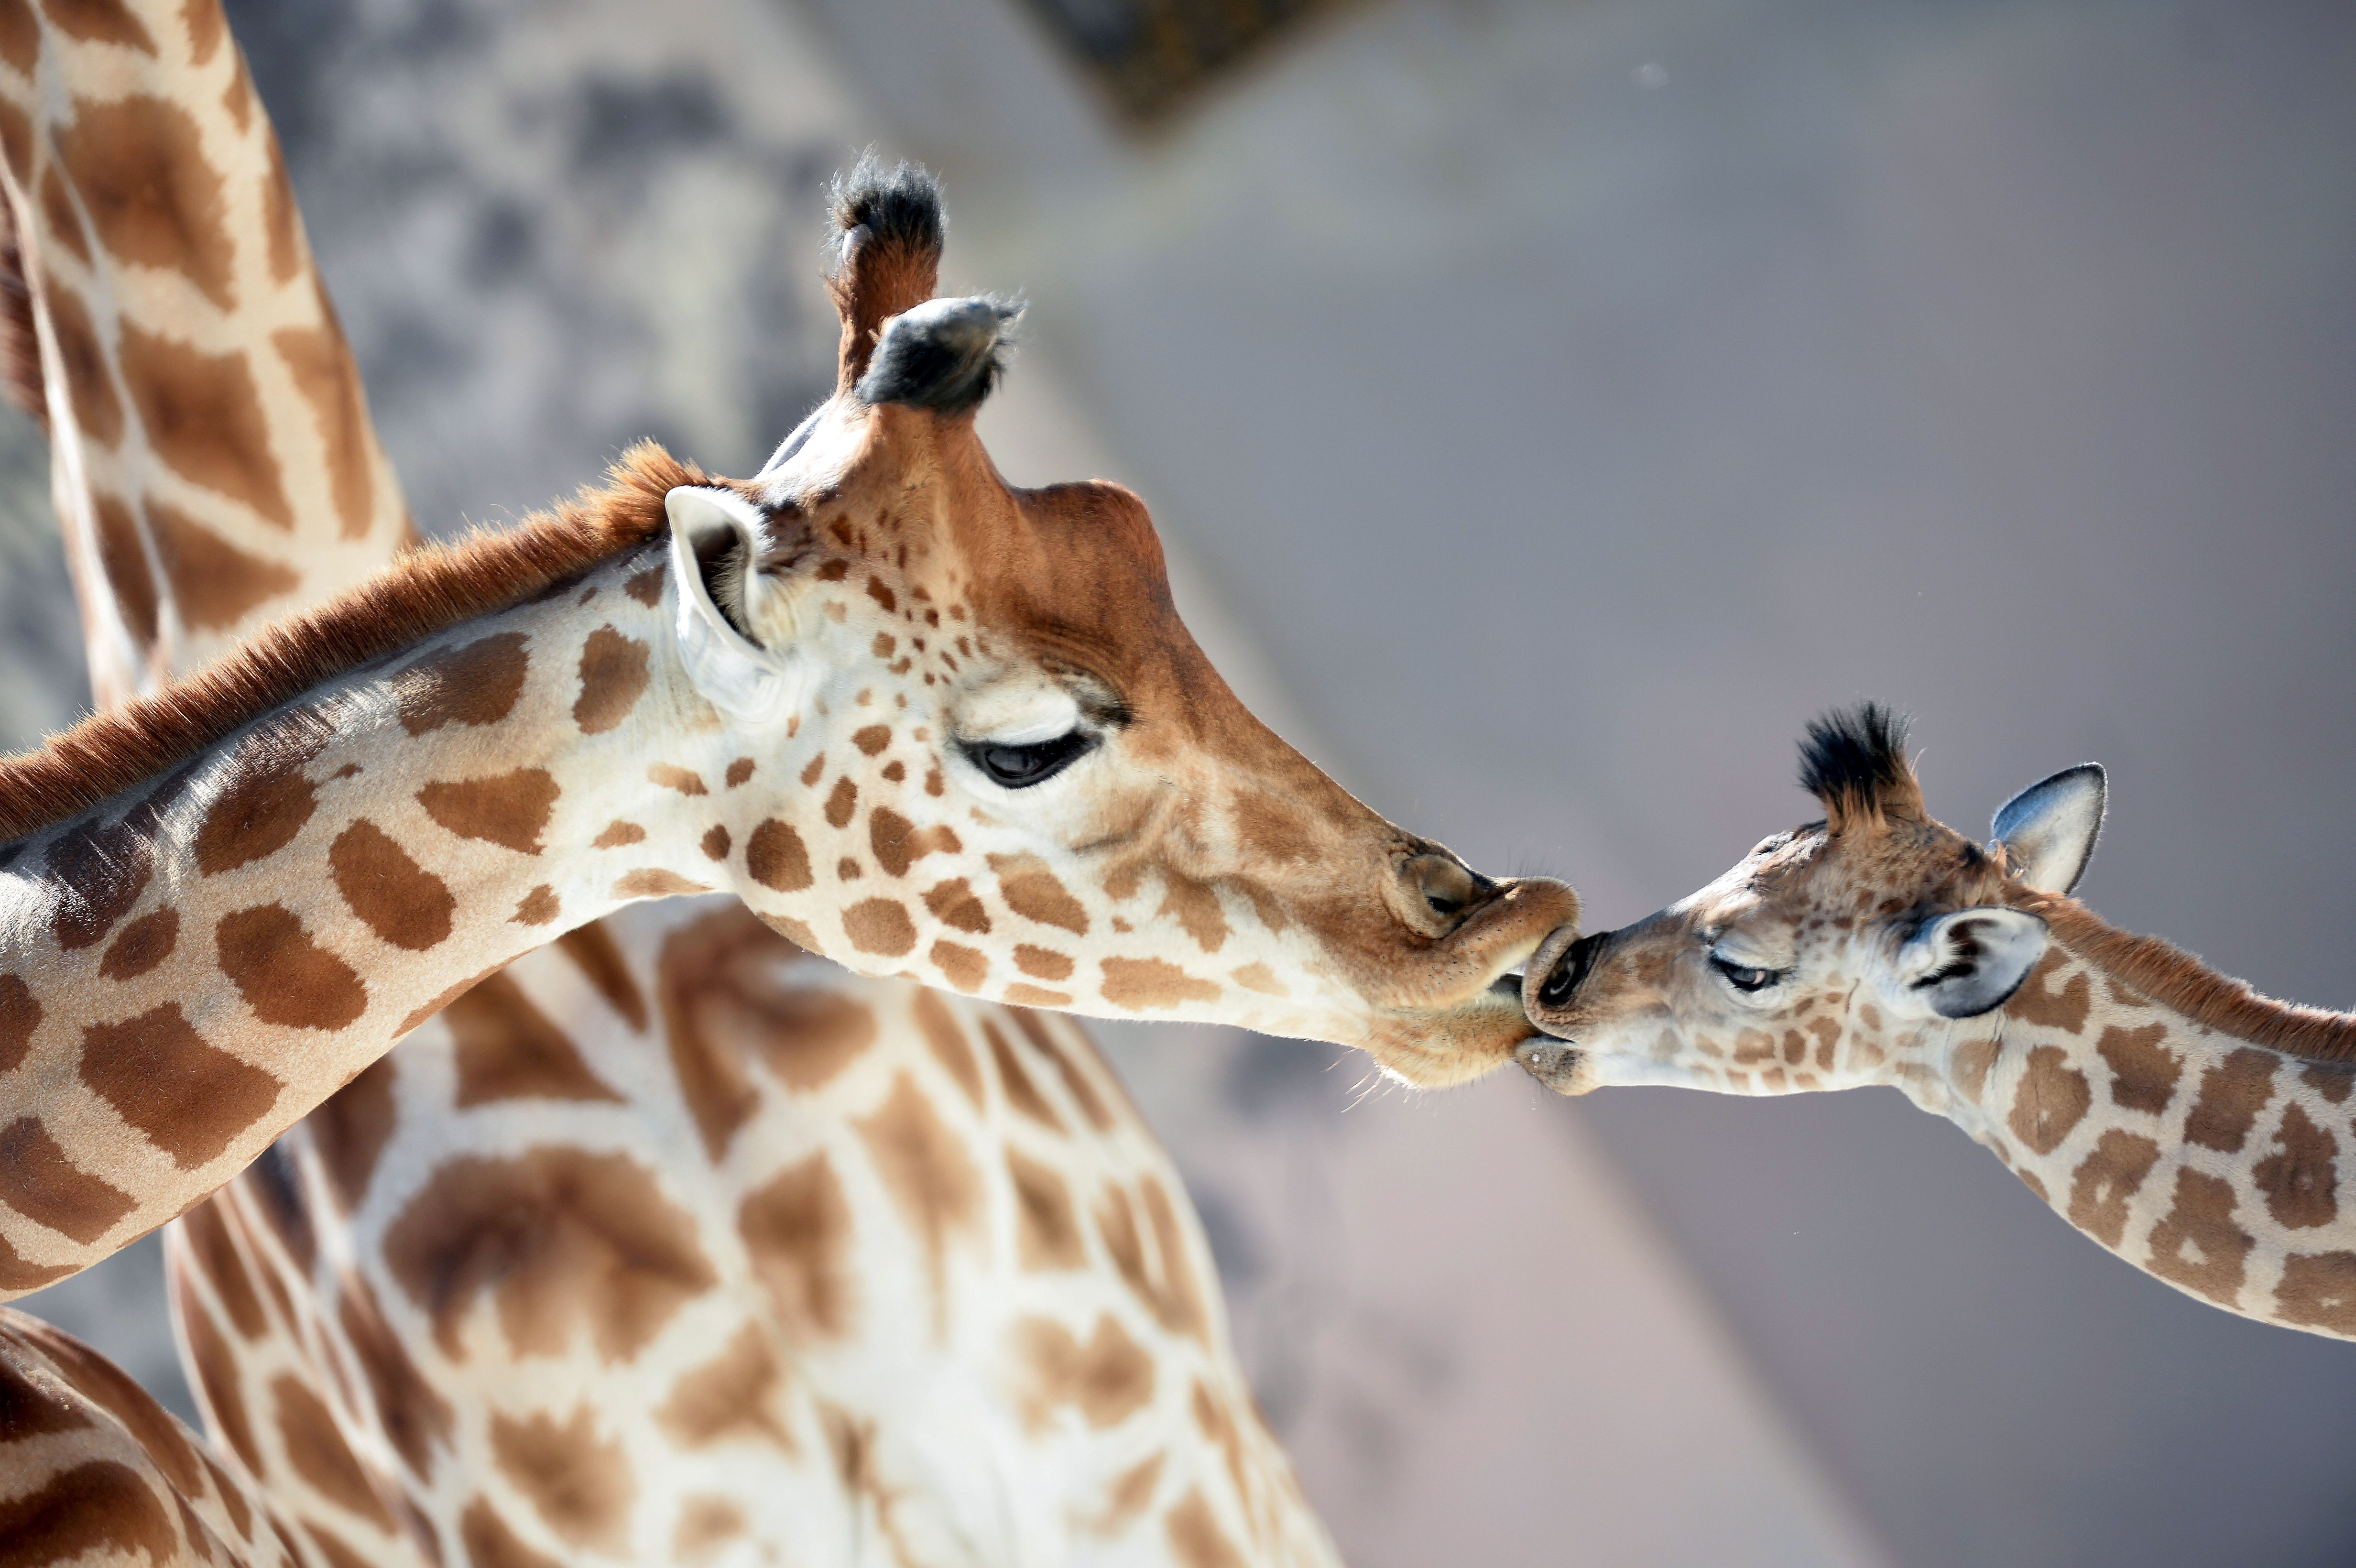 A baby giraffe of Niger named Kenai, right, born on Aug. 25, 2016, kisses his mother Dioni  at the zoo of La Fleche, France, on Aug. 31, 2016.